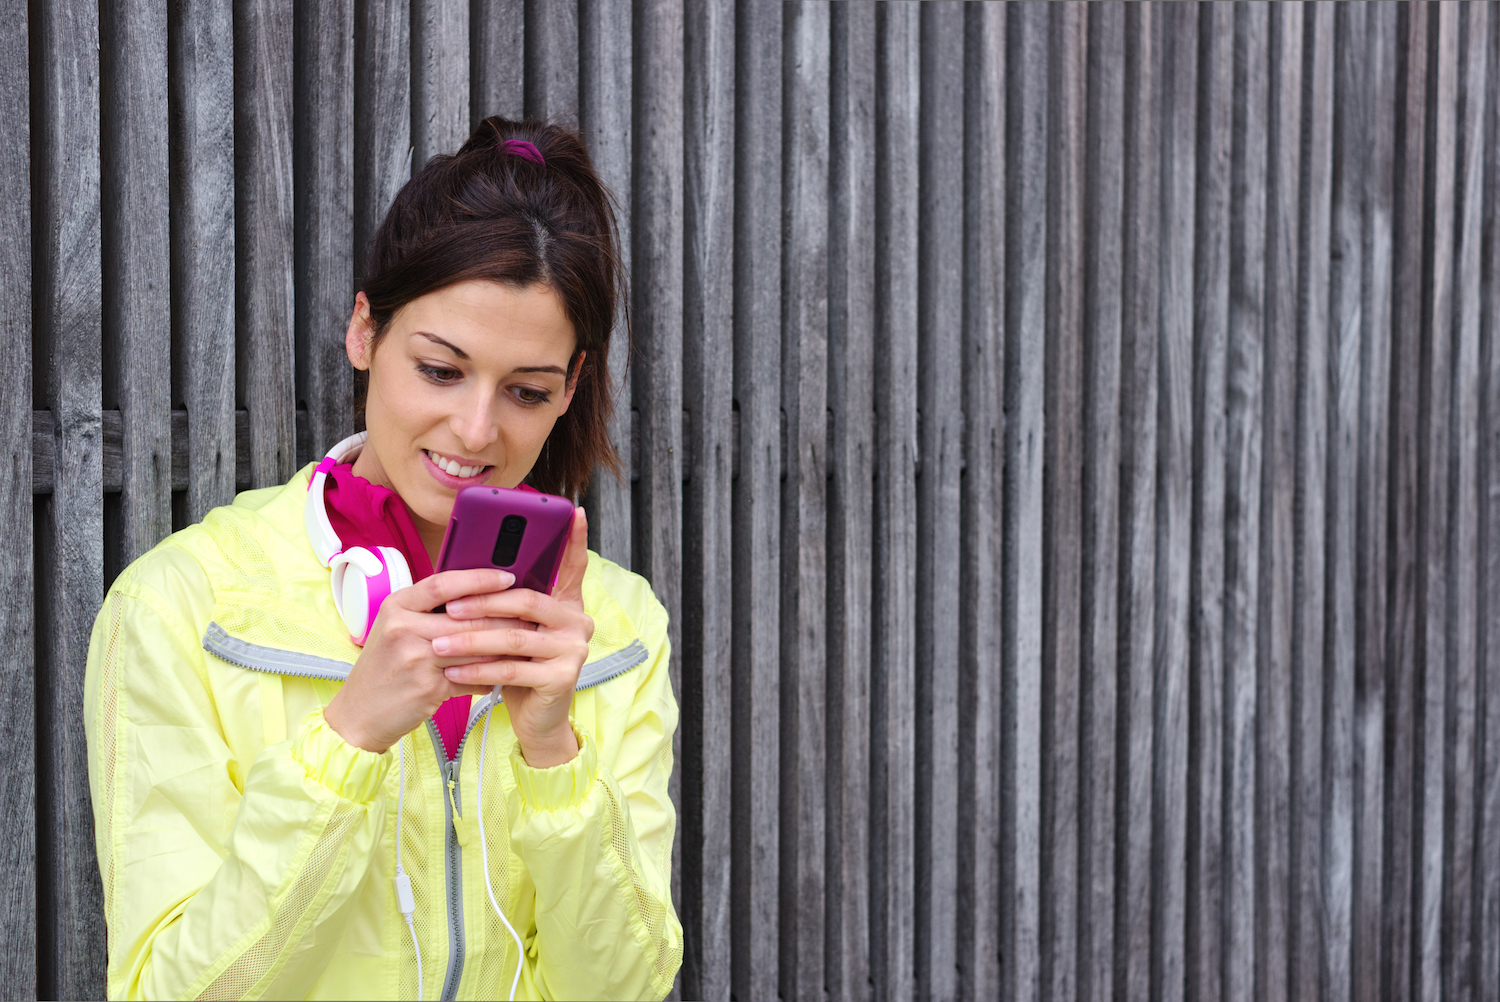 Send weekly emails to fitness clients